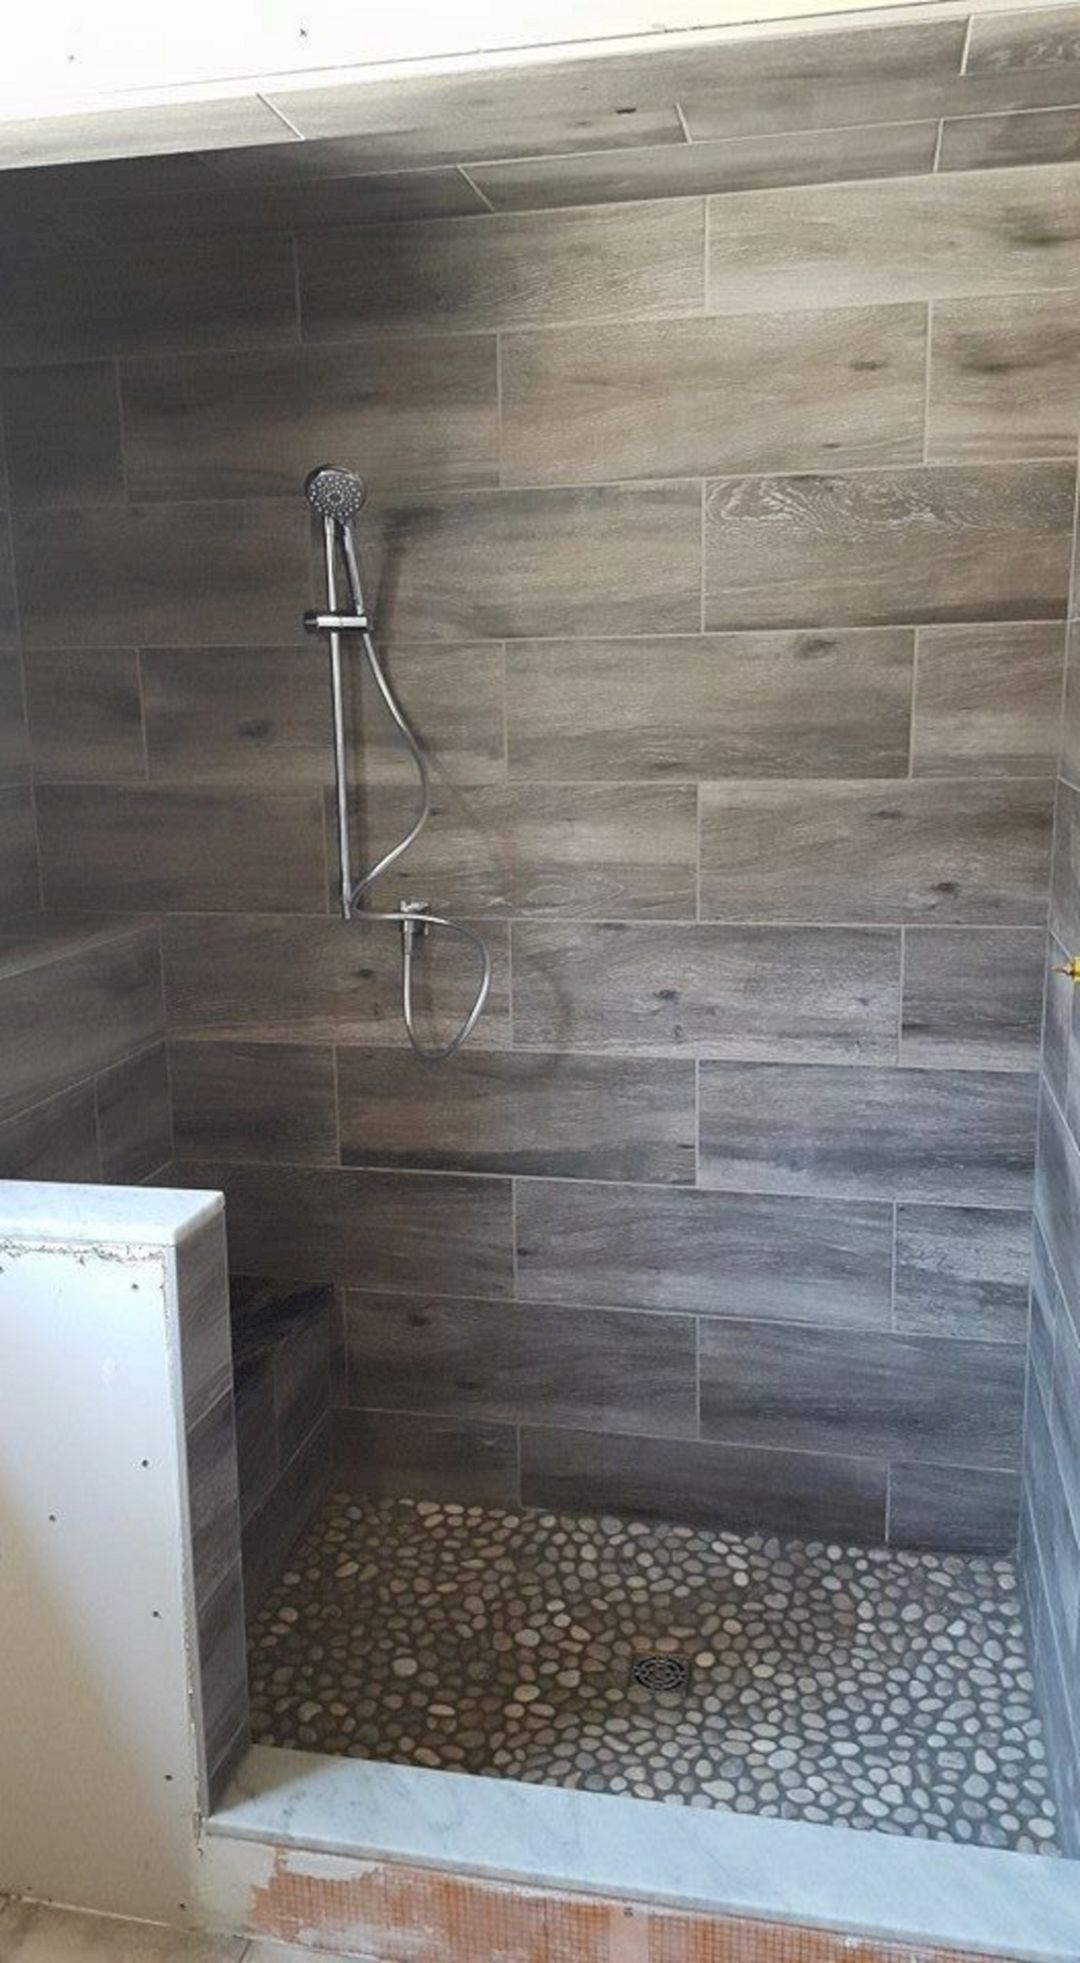 Marvelous 45+ Amazing Rock Wall Bathroom You Need To Impersonate  Https://decoredo.com/13316 45 Amazing Rock Wall Bathroom  You Need To Impersonate/